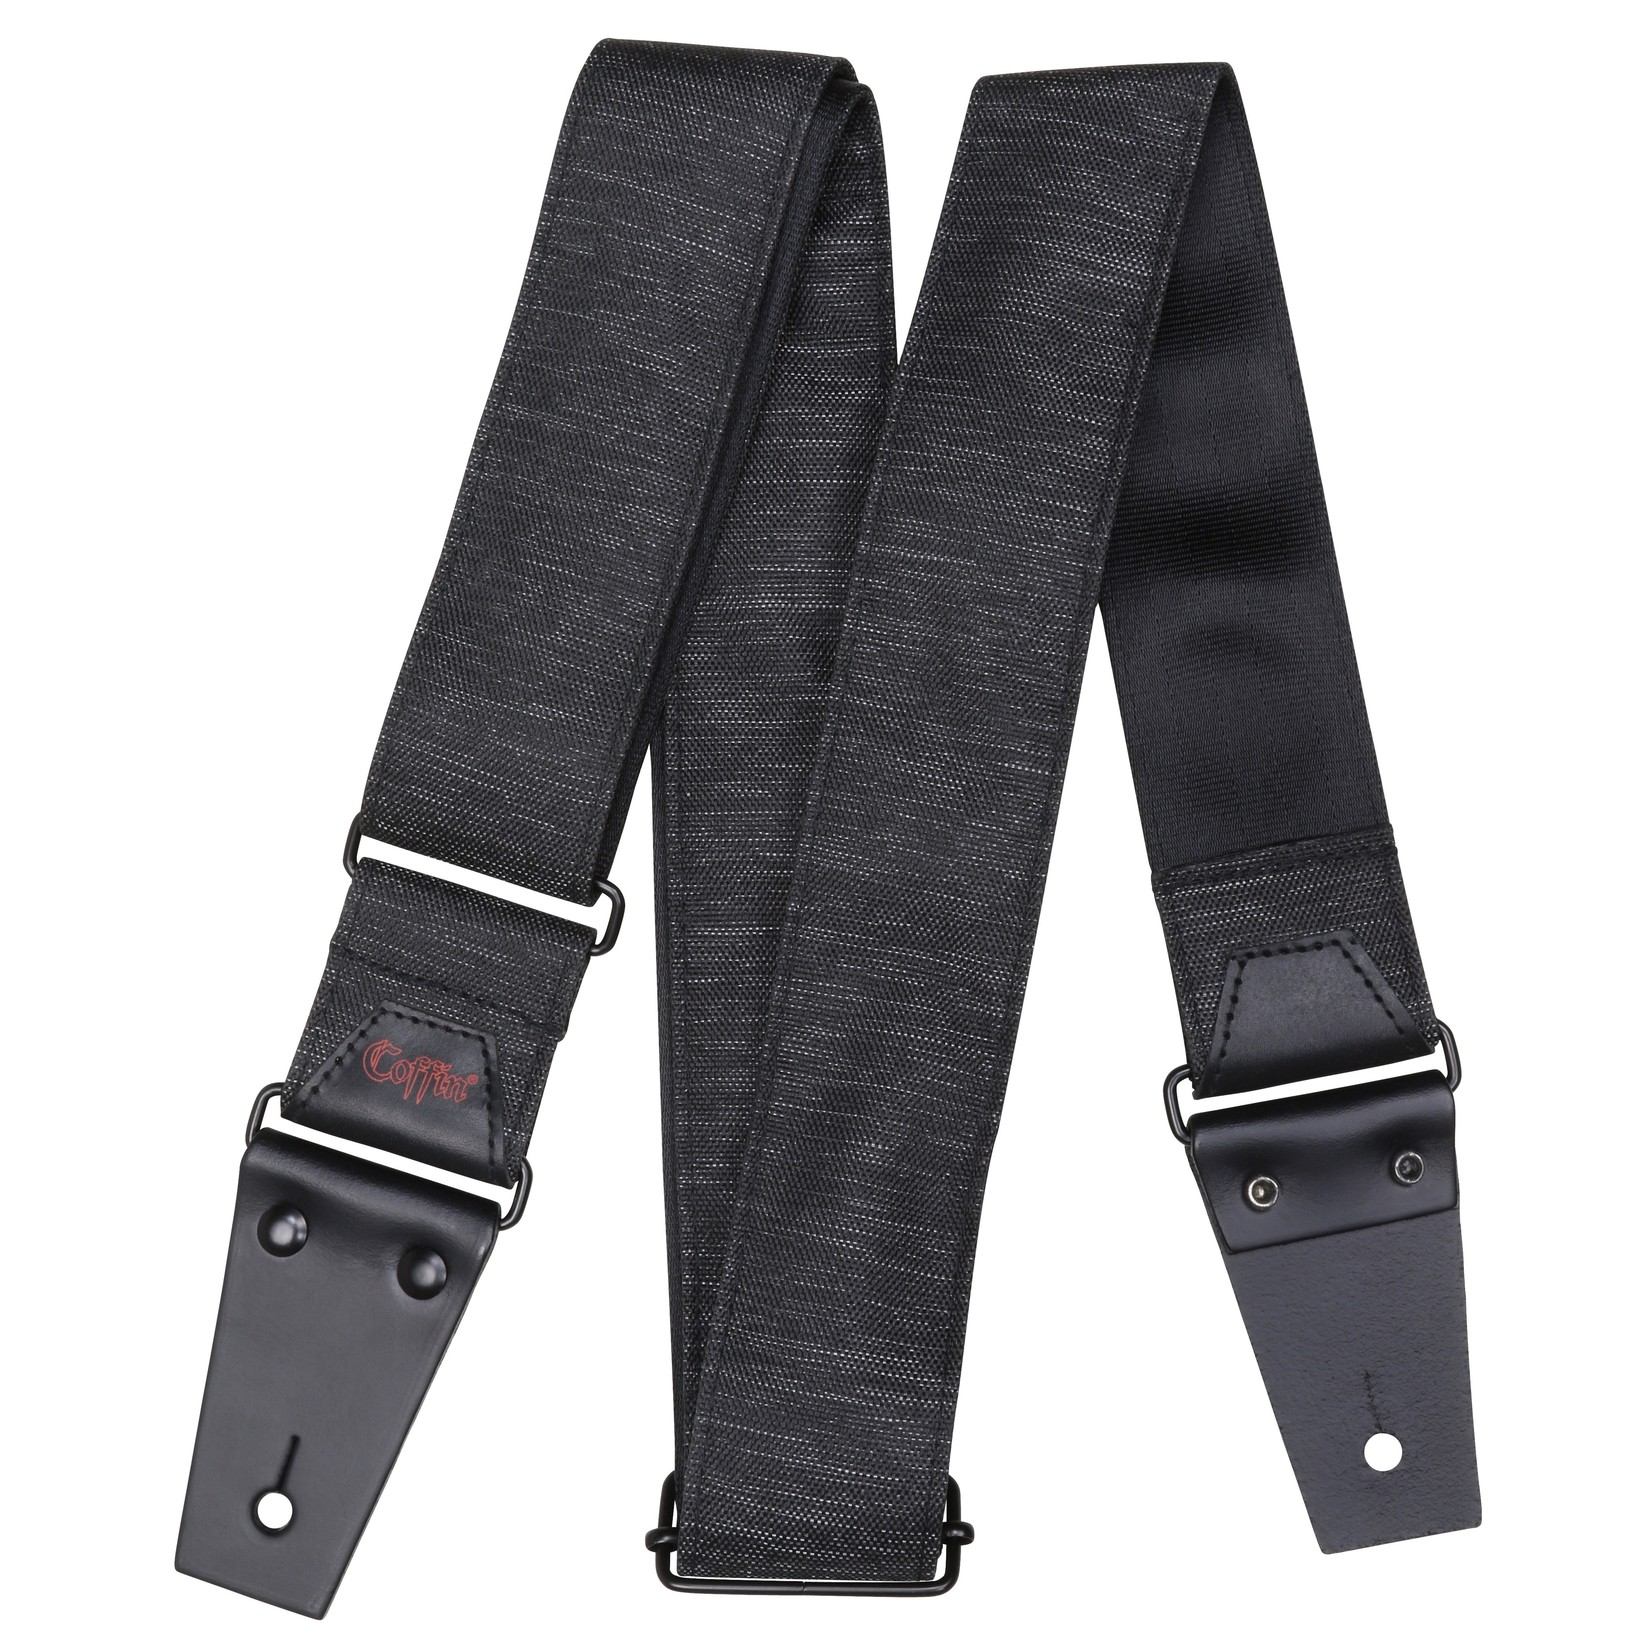 """Coffin Case Coffin """"The Pallbearer"""" Guitar Strap, Heathered Charcoal Gray fabric with black leather tips"""